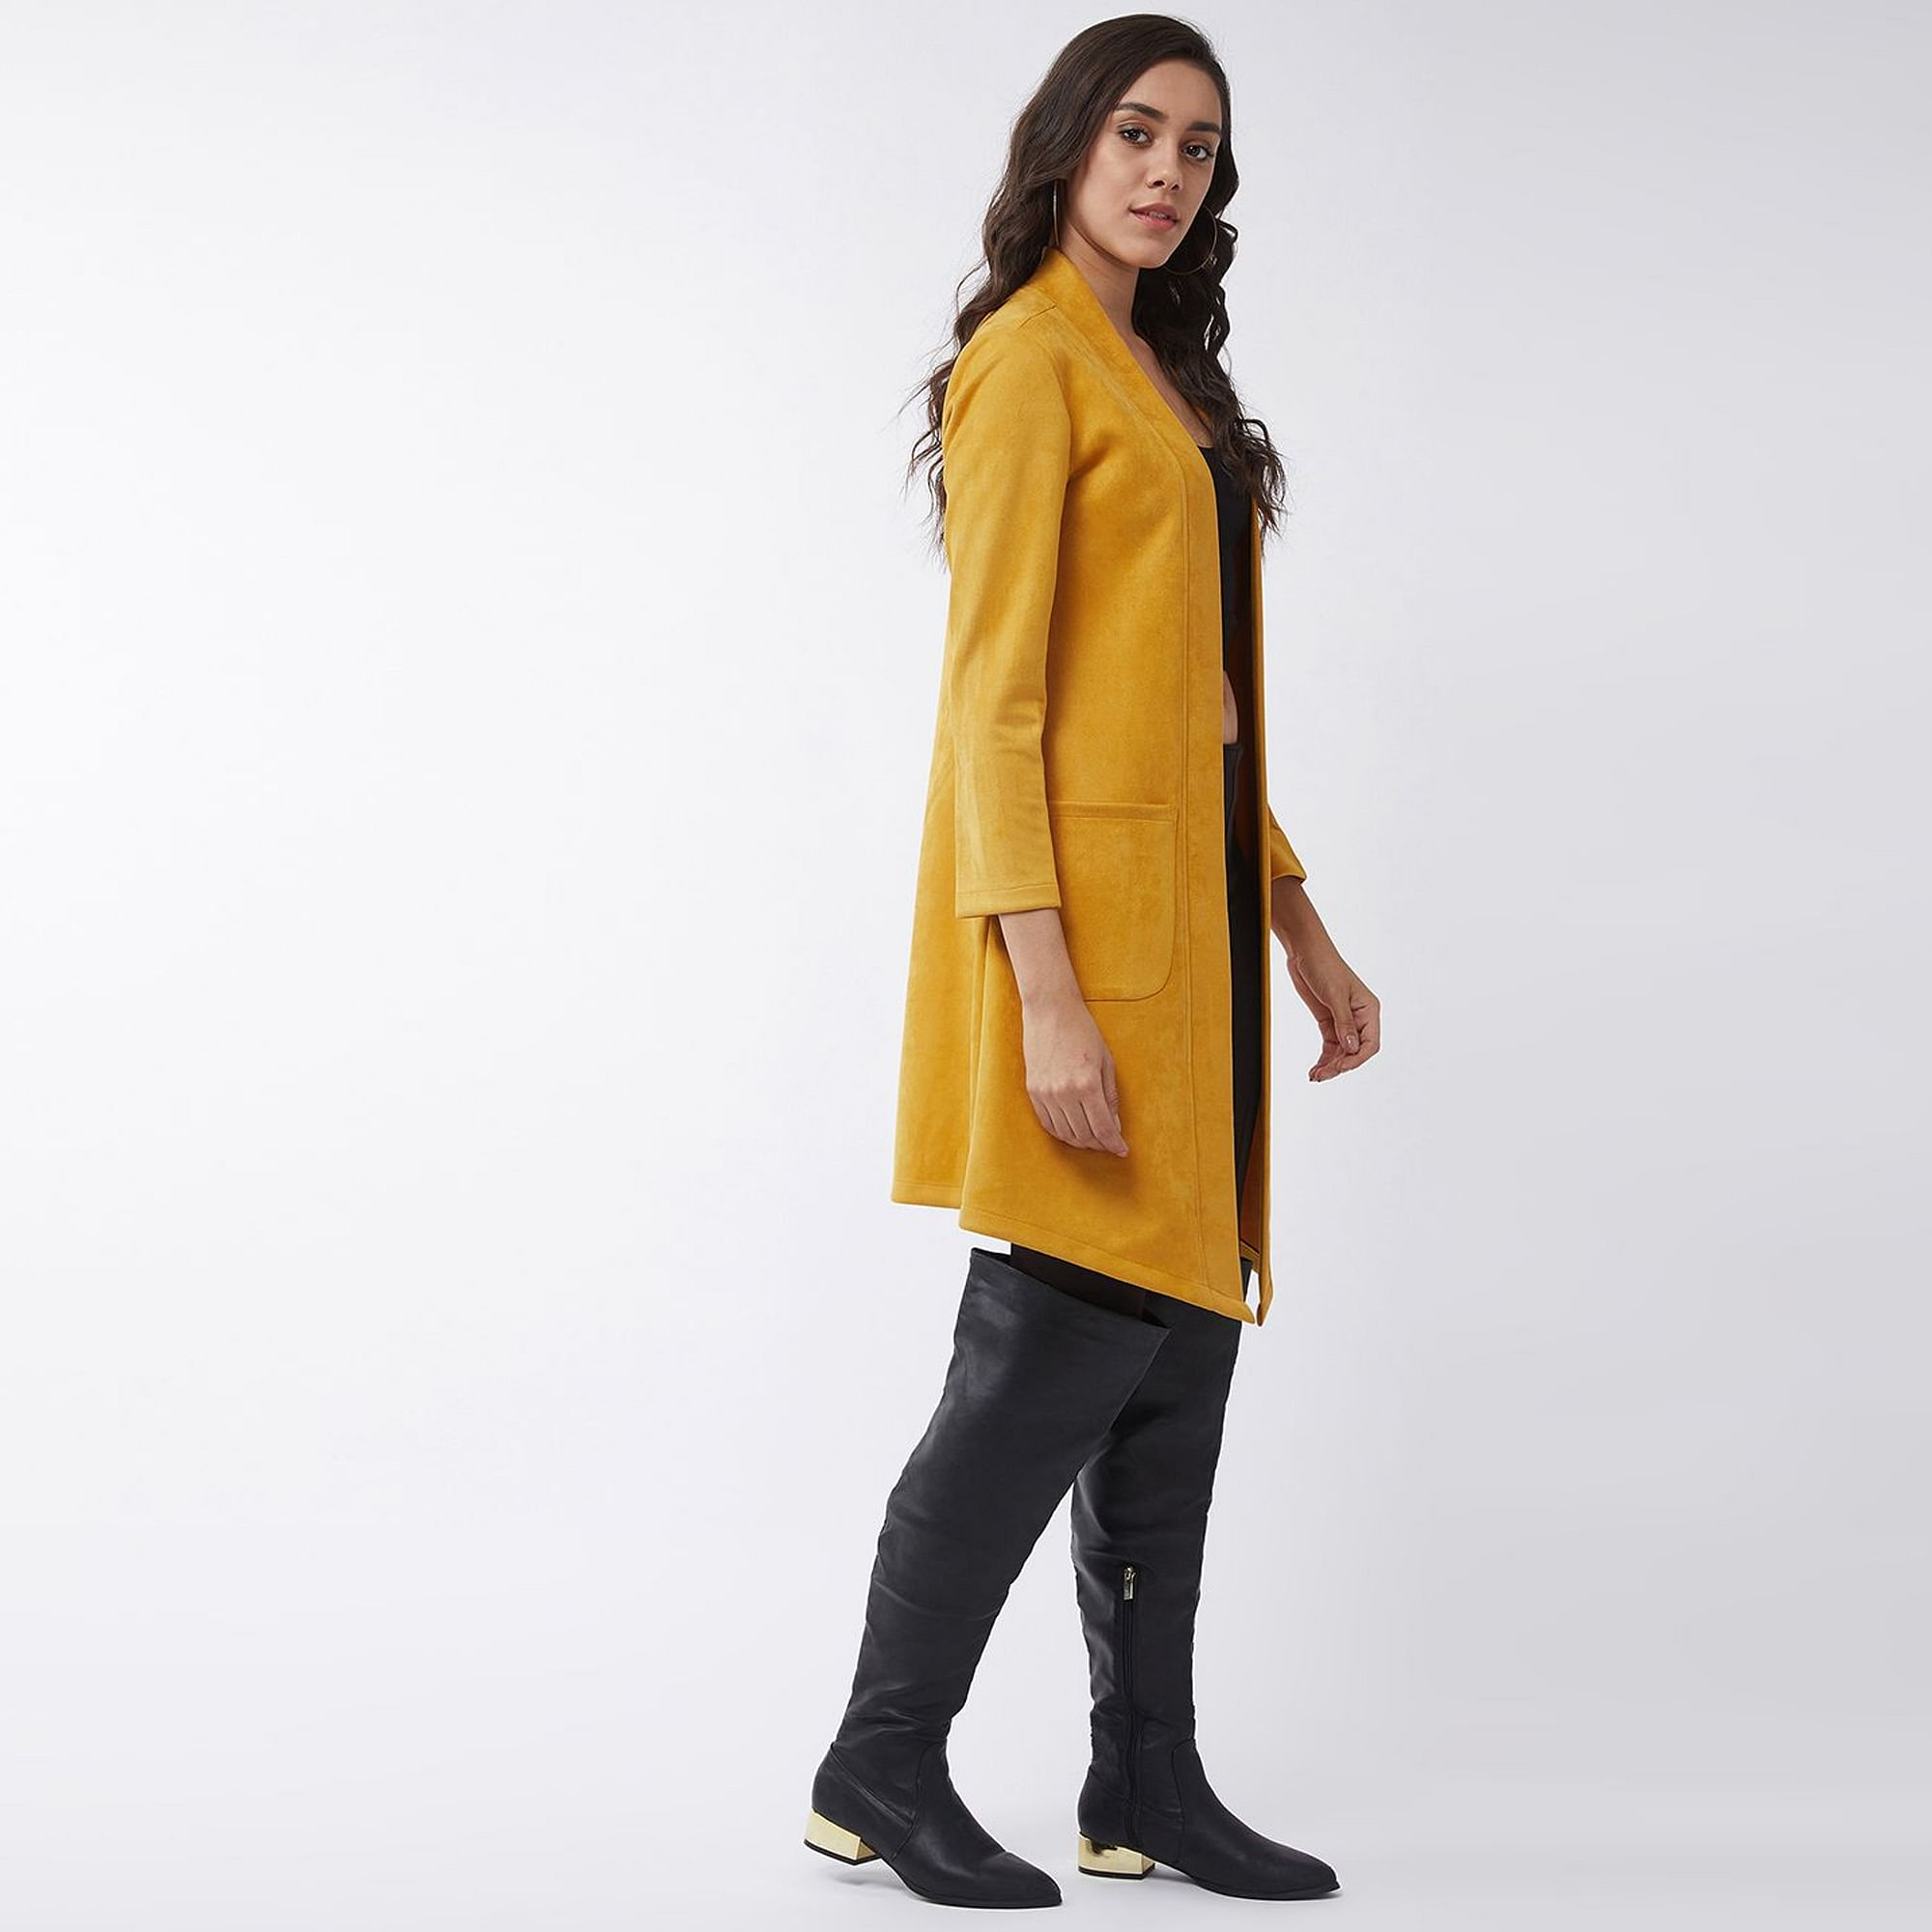 Pannkh - Women's Yellow Colored Solid Long Pointed Open Polyester Shrug